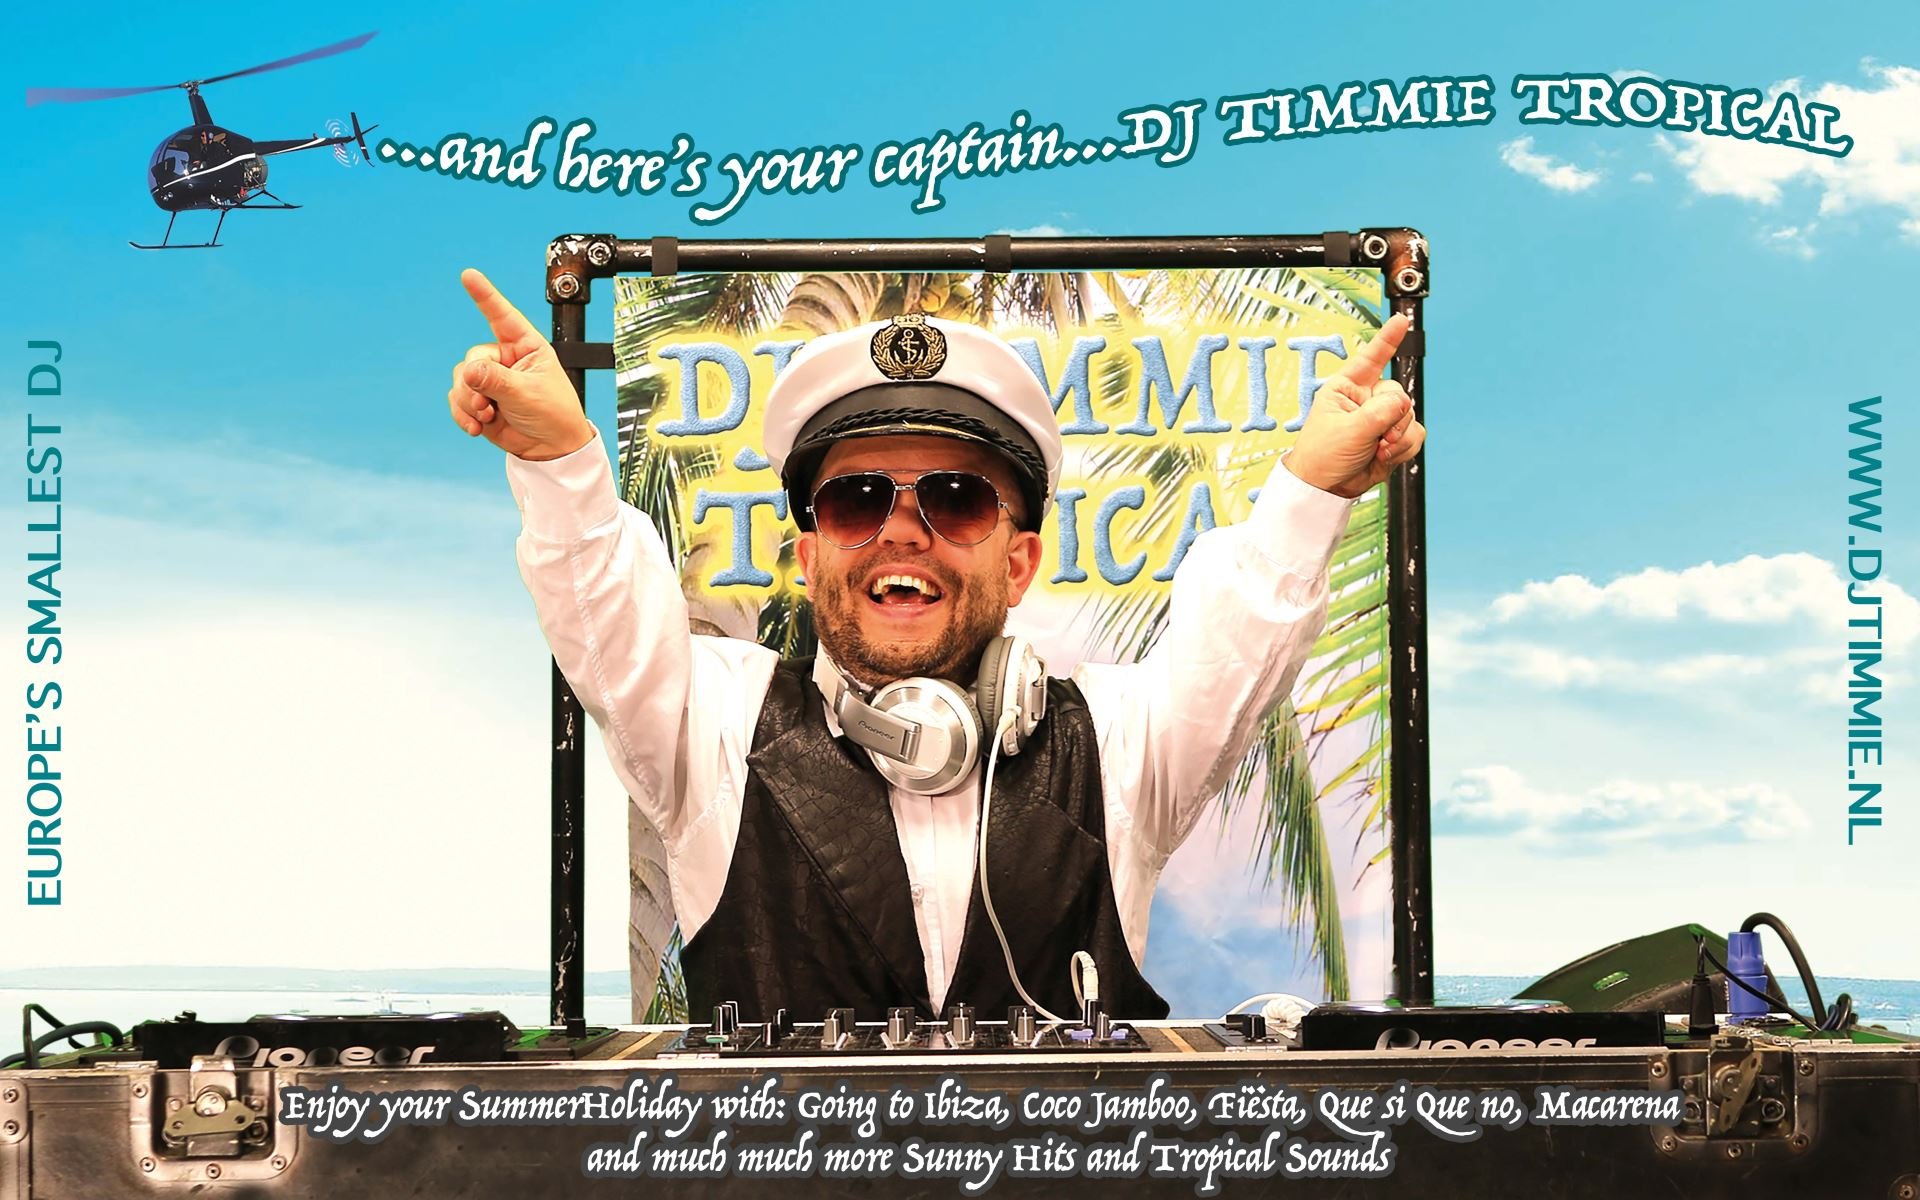 DJ_Timmie_Tropical